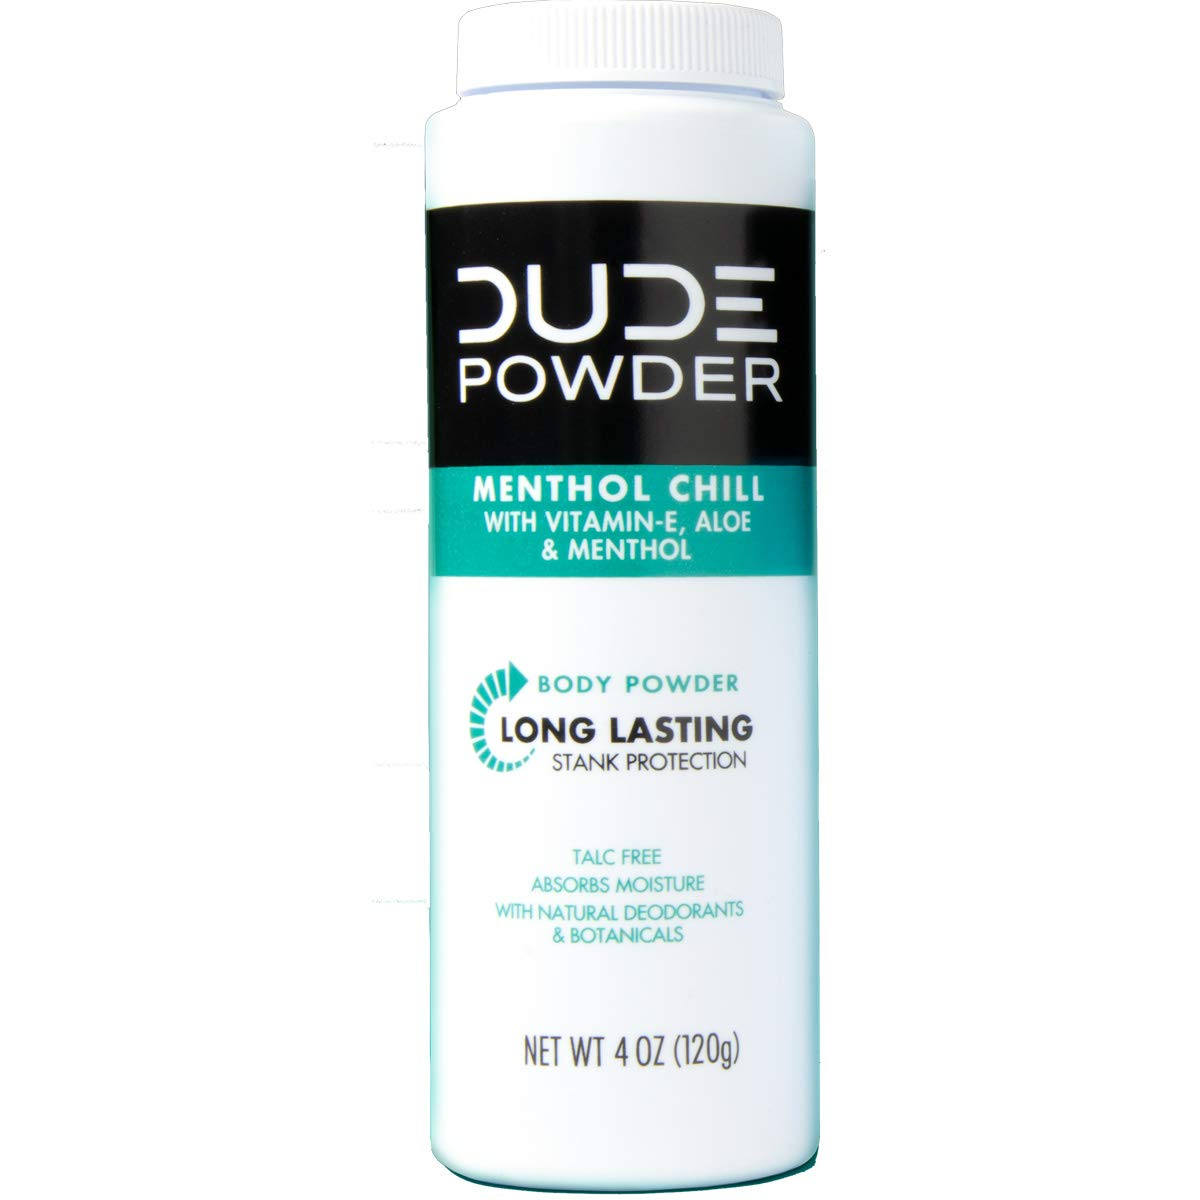 DUDE Body Powder, Menthol Chill 4 Ounce 3 Bottle Pack Natural Deodorizers Cooling Menthol Aloe, Talc Free Formula, Corn-Starch Based Daily Post-Shower Deodorizing Powder for Men